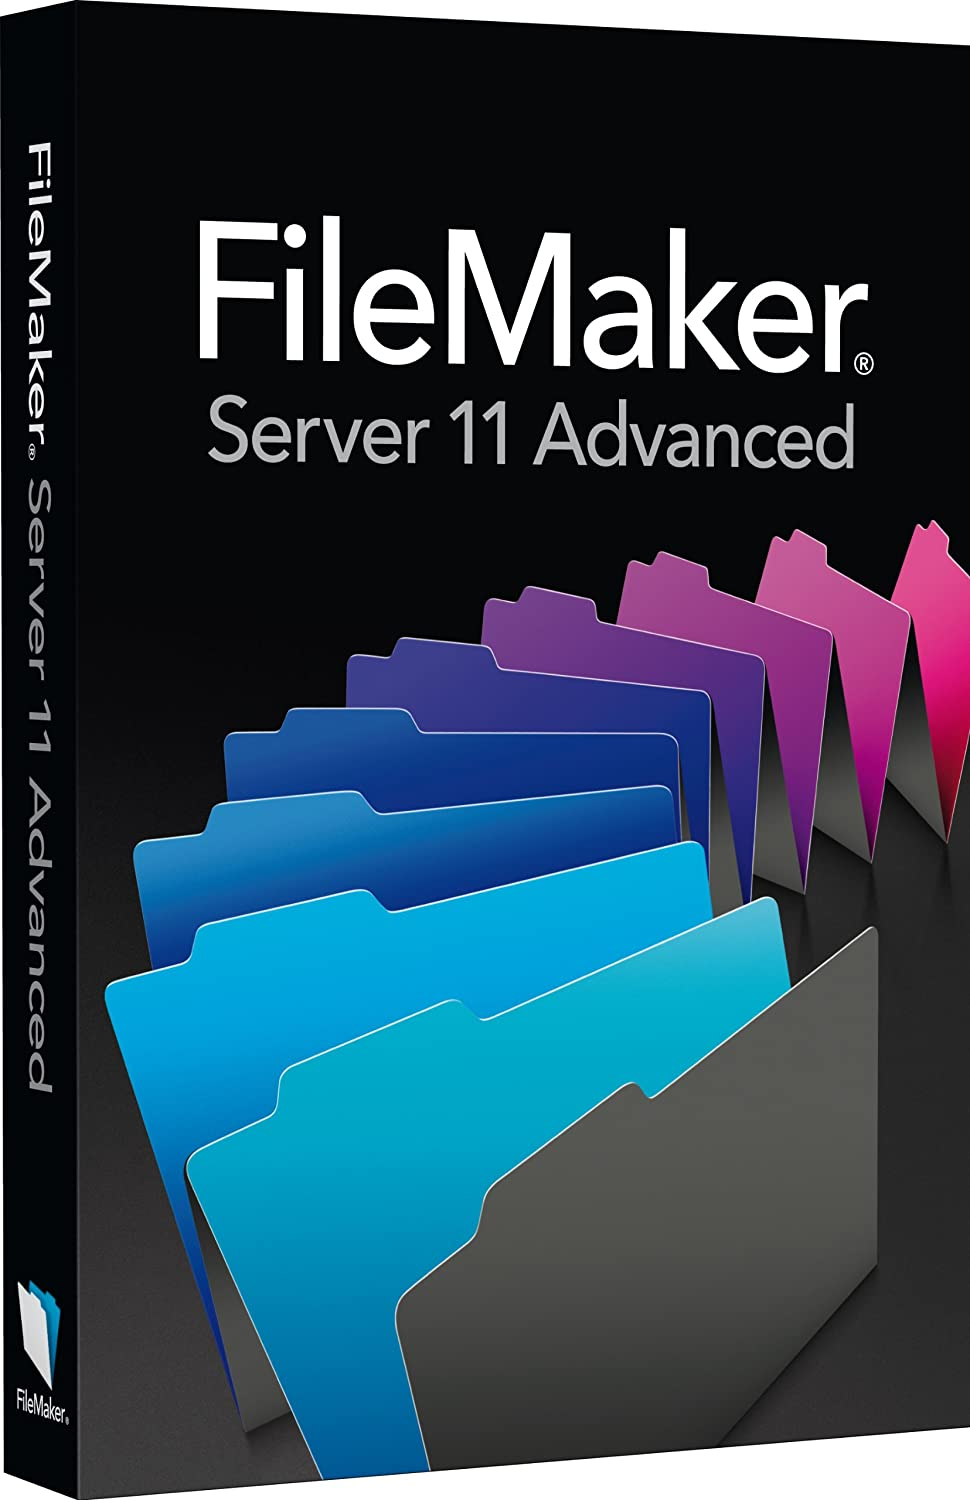 FileMaker Pro 11 released with quicker, easier database creation